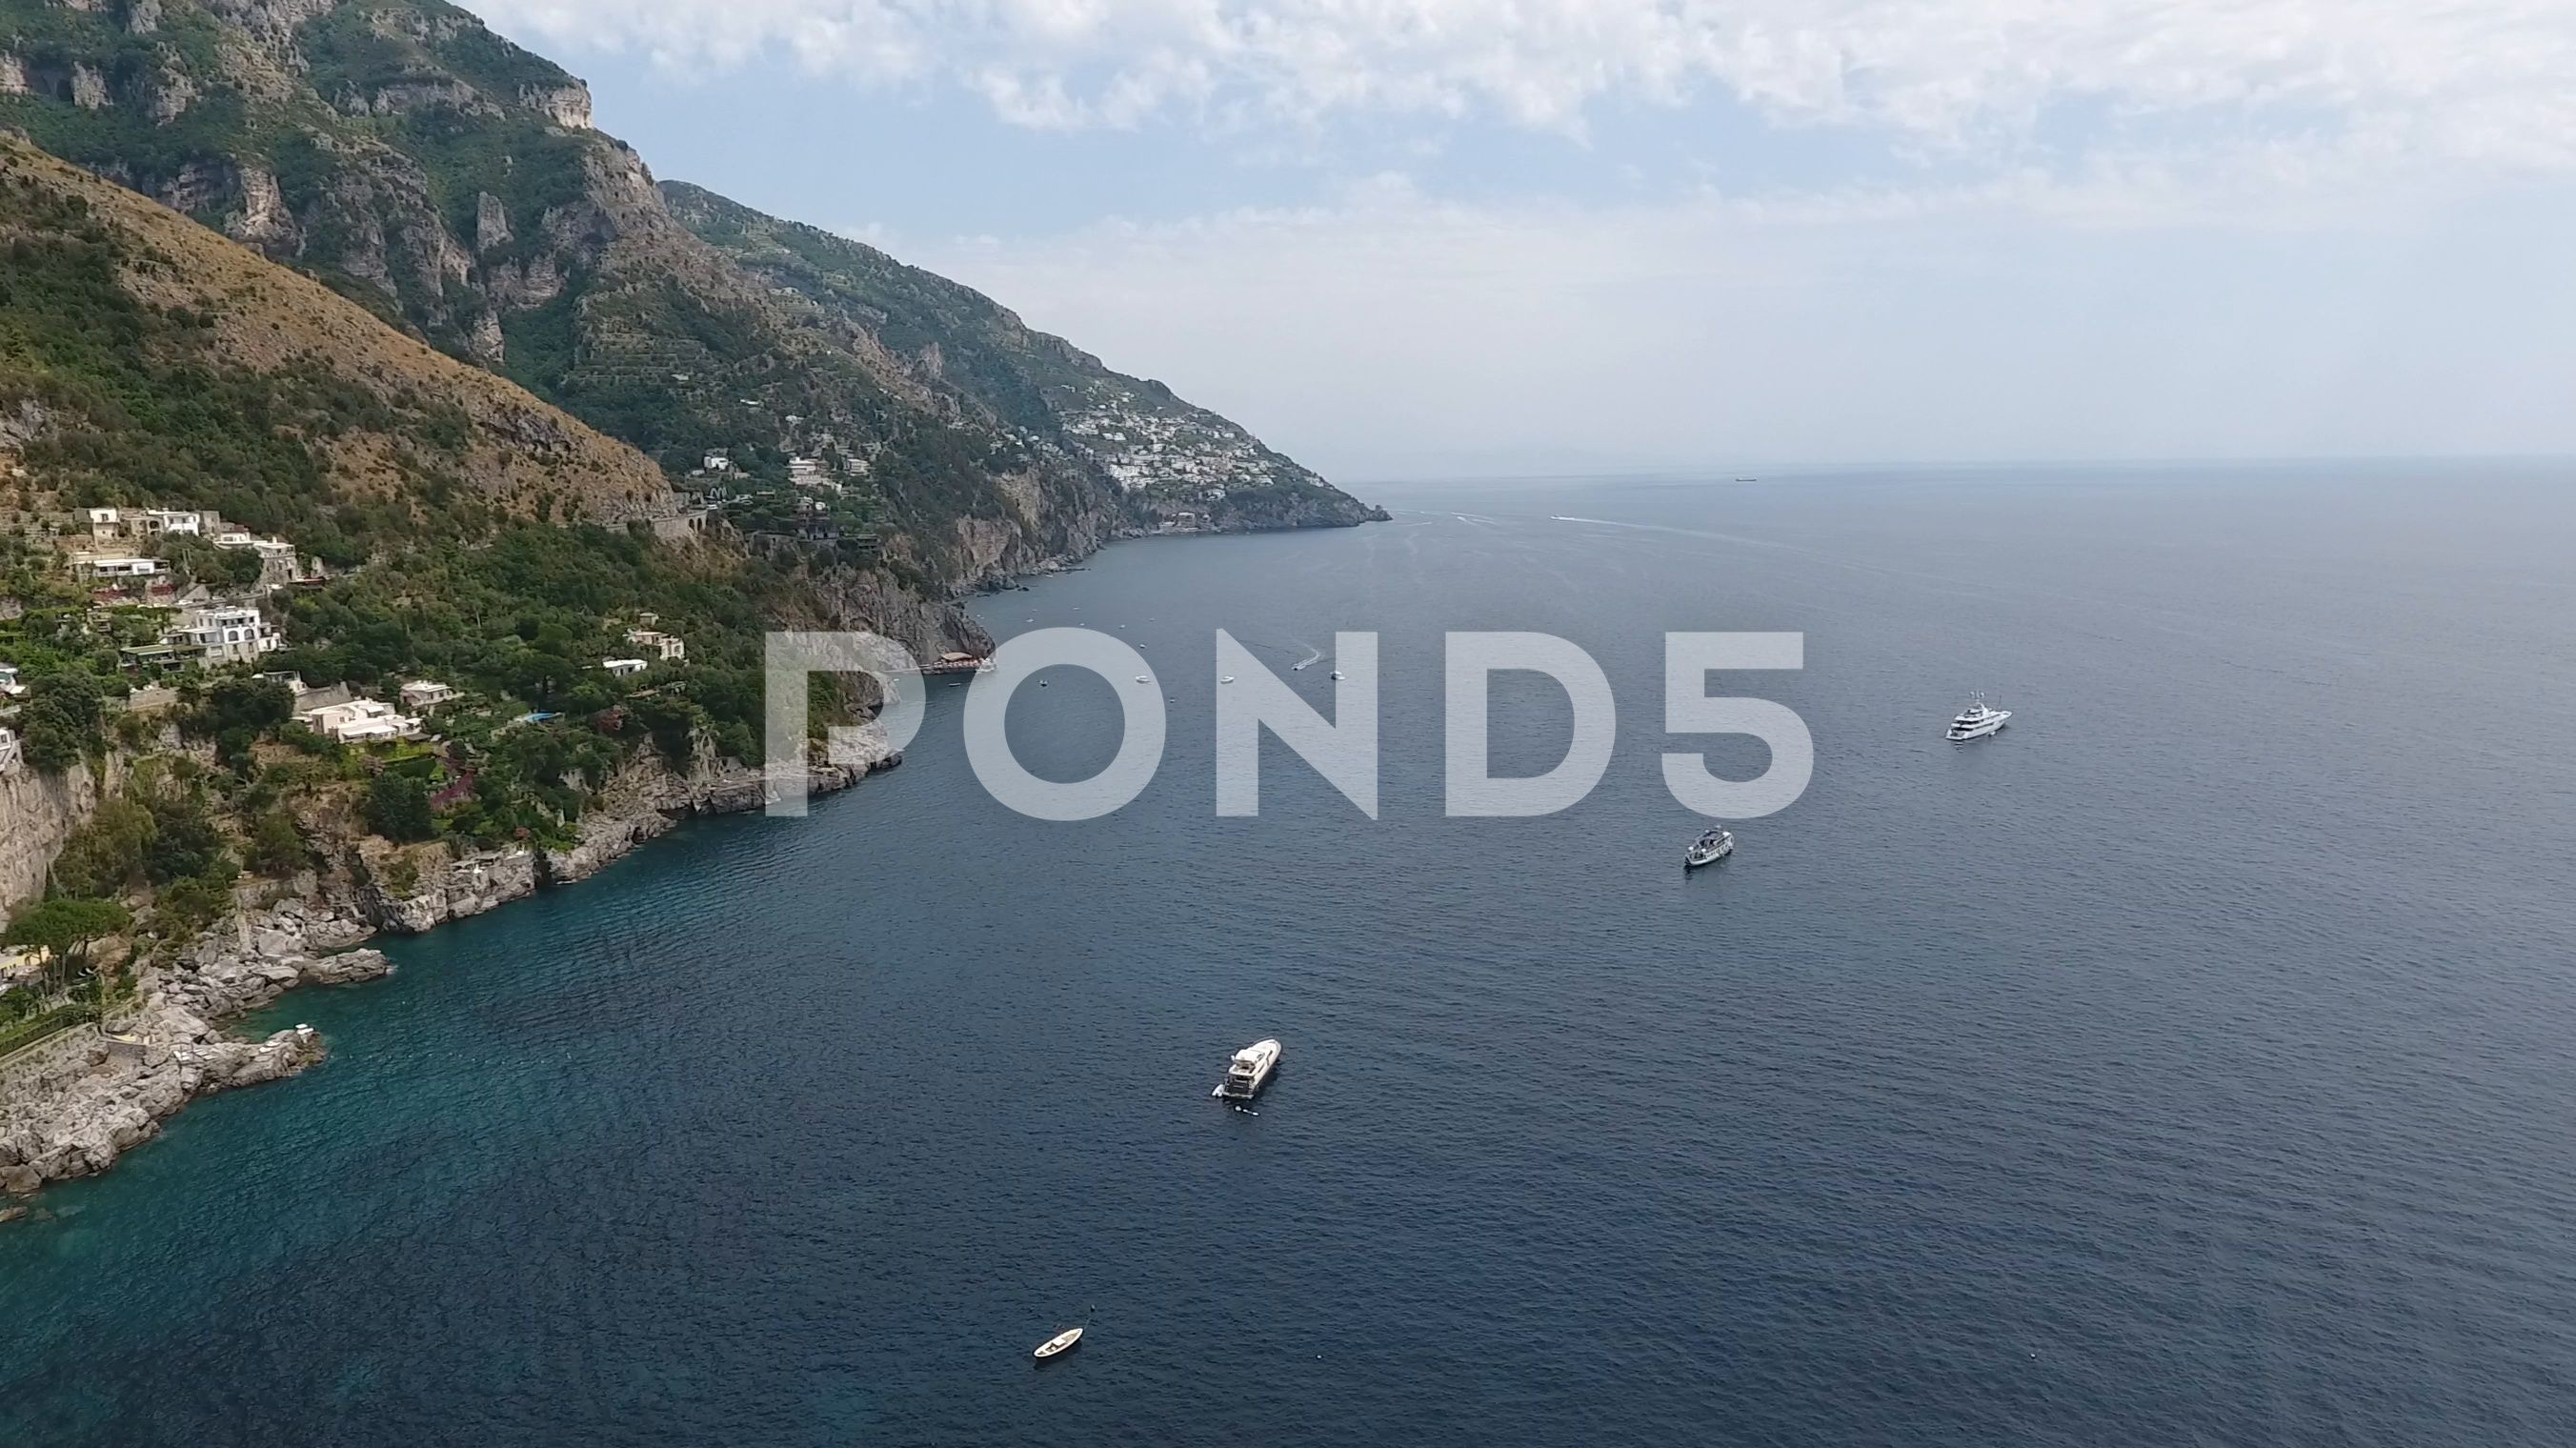 Landscape Nature Of The Sea And Mountains View From Above Stock Footage Ad Sea Nature Landscape Mountains Landscape Nature Photo Illustration